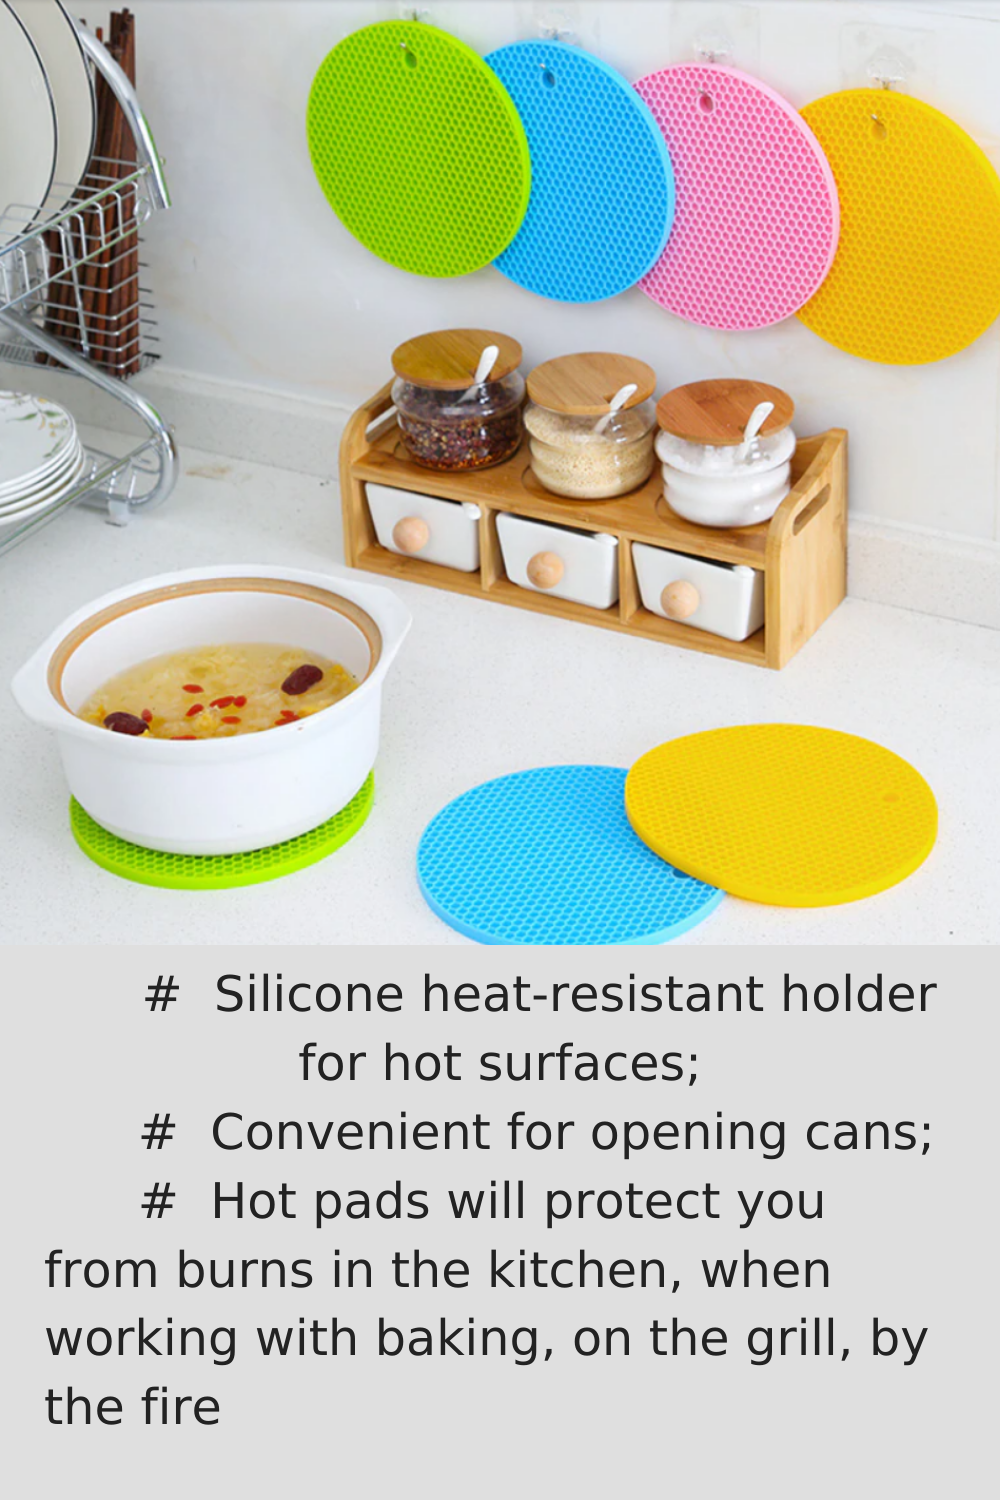 Ideas Camping Ideas Barbeque Magic Silicone Silicone Silicone Ideas Silicone Ideas Products In 2020 Heat Resistant Silicone Kitchen Utensils Kids Rugs